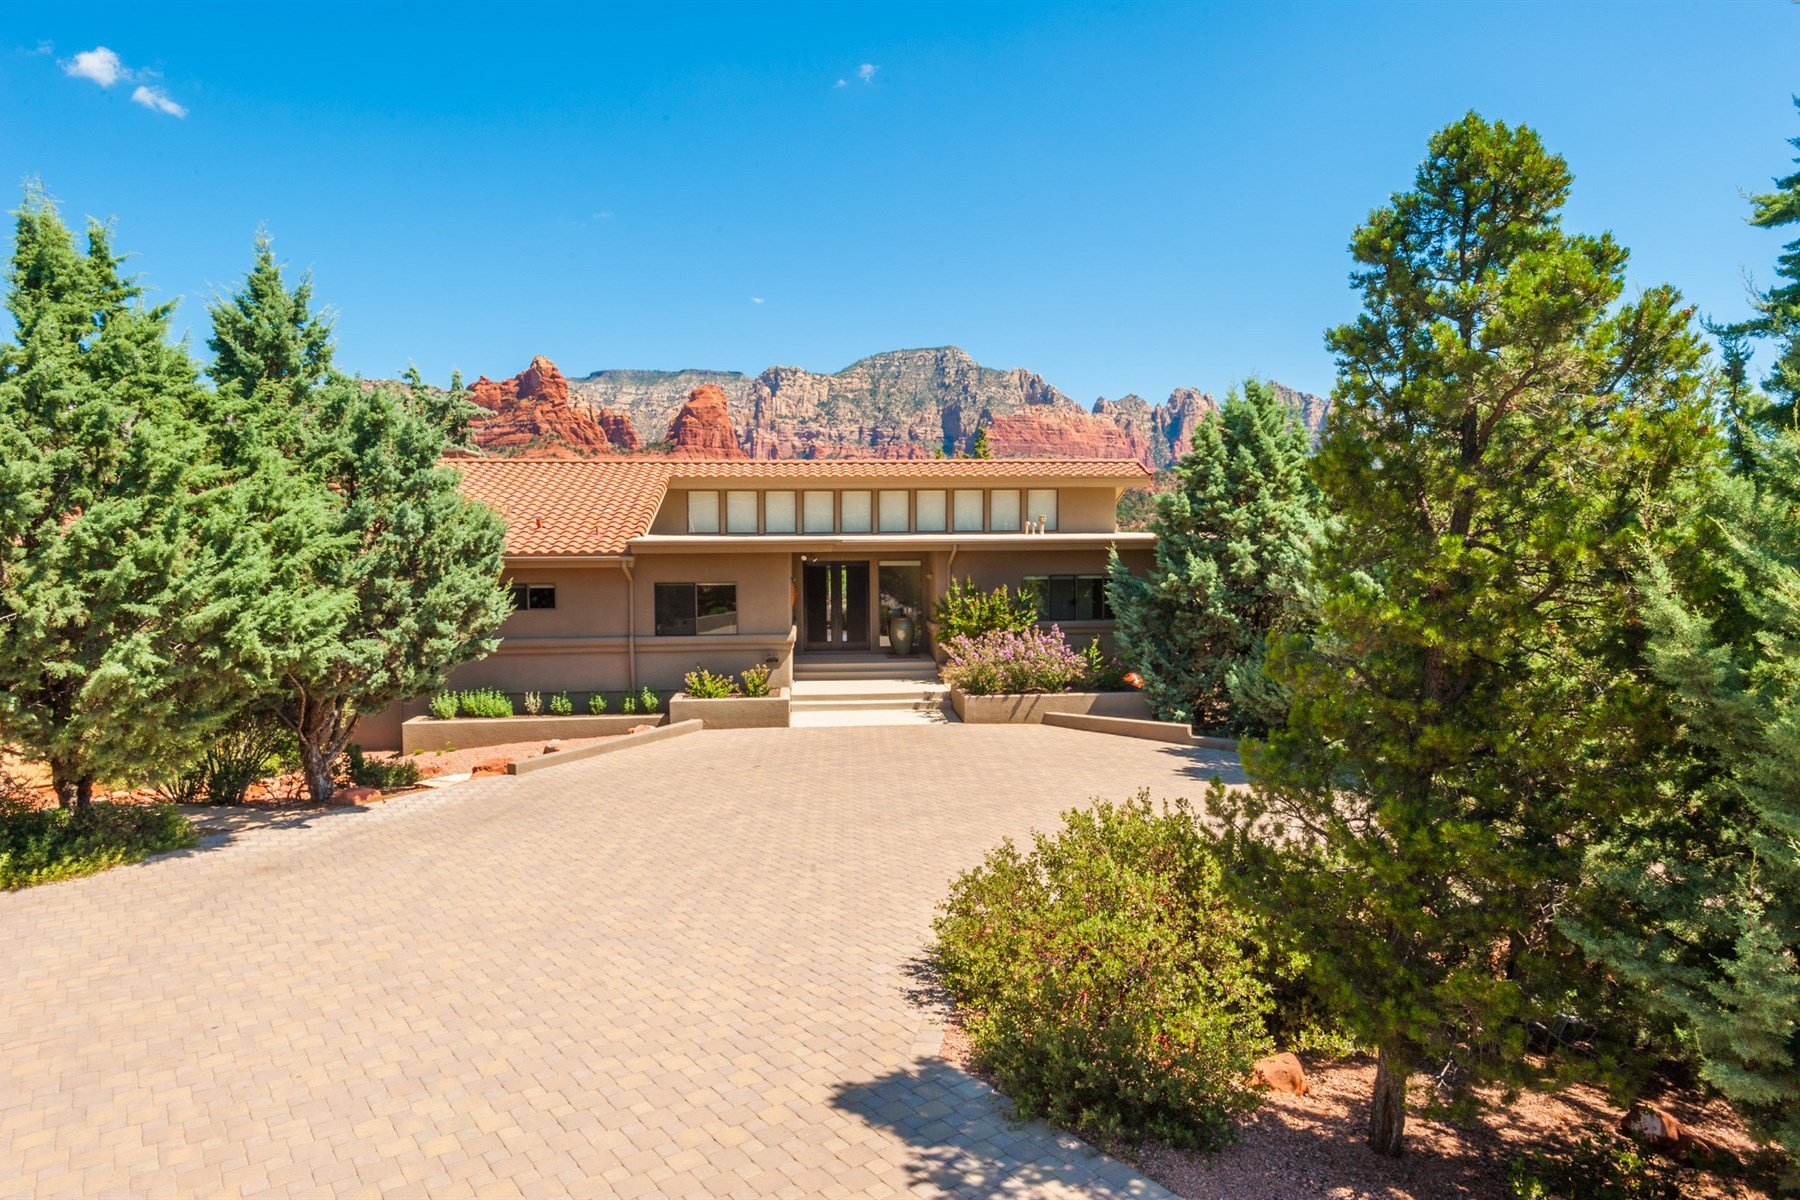 Property For Sale at Redesign of the home with an emphasis on revealing Sedona's most coveted views